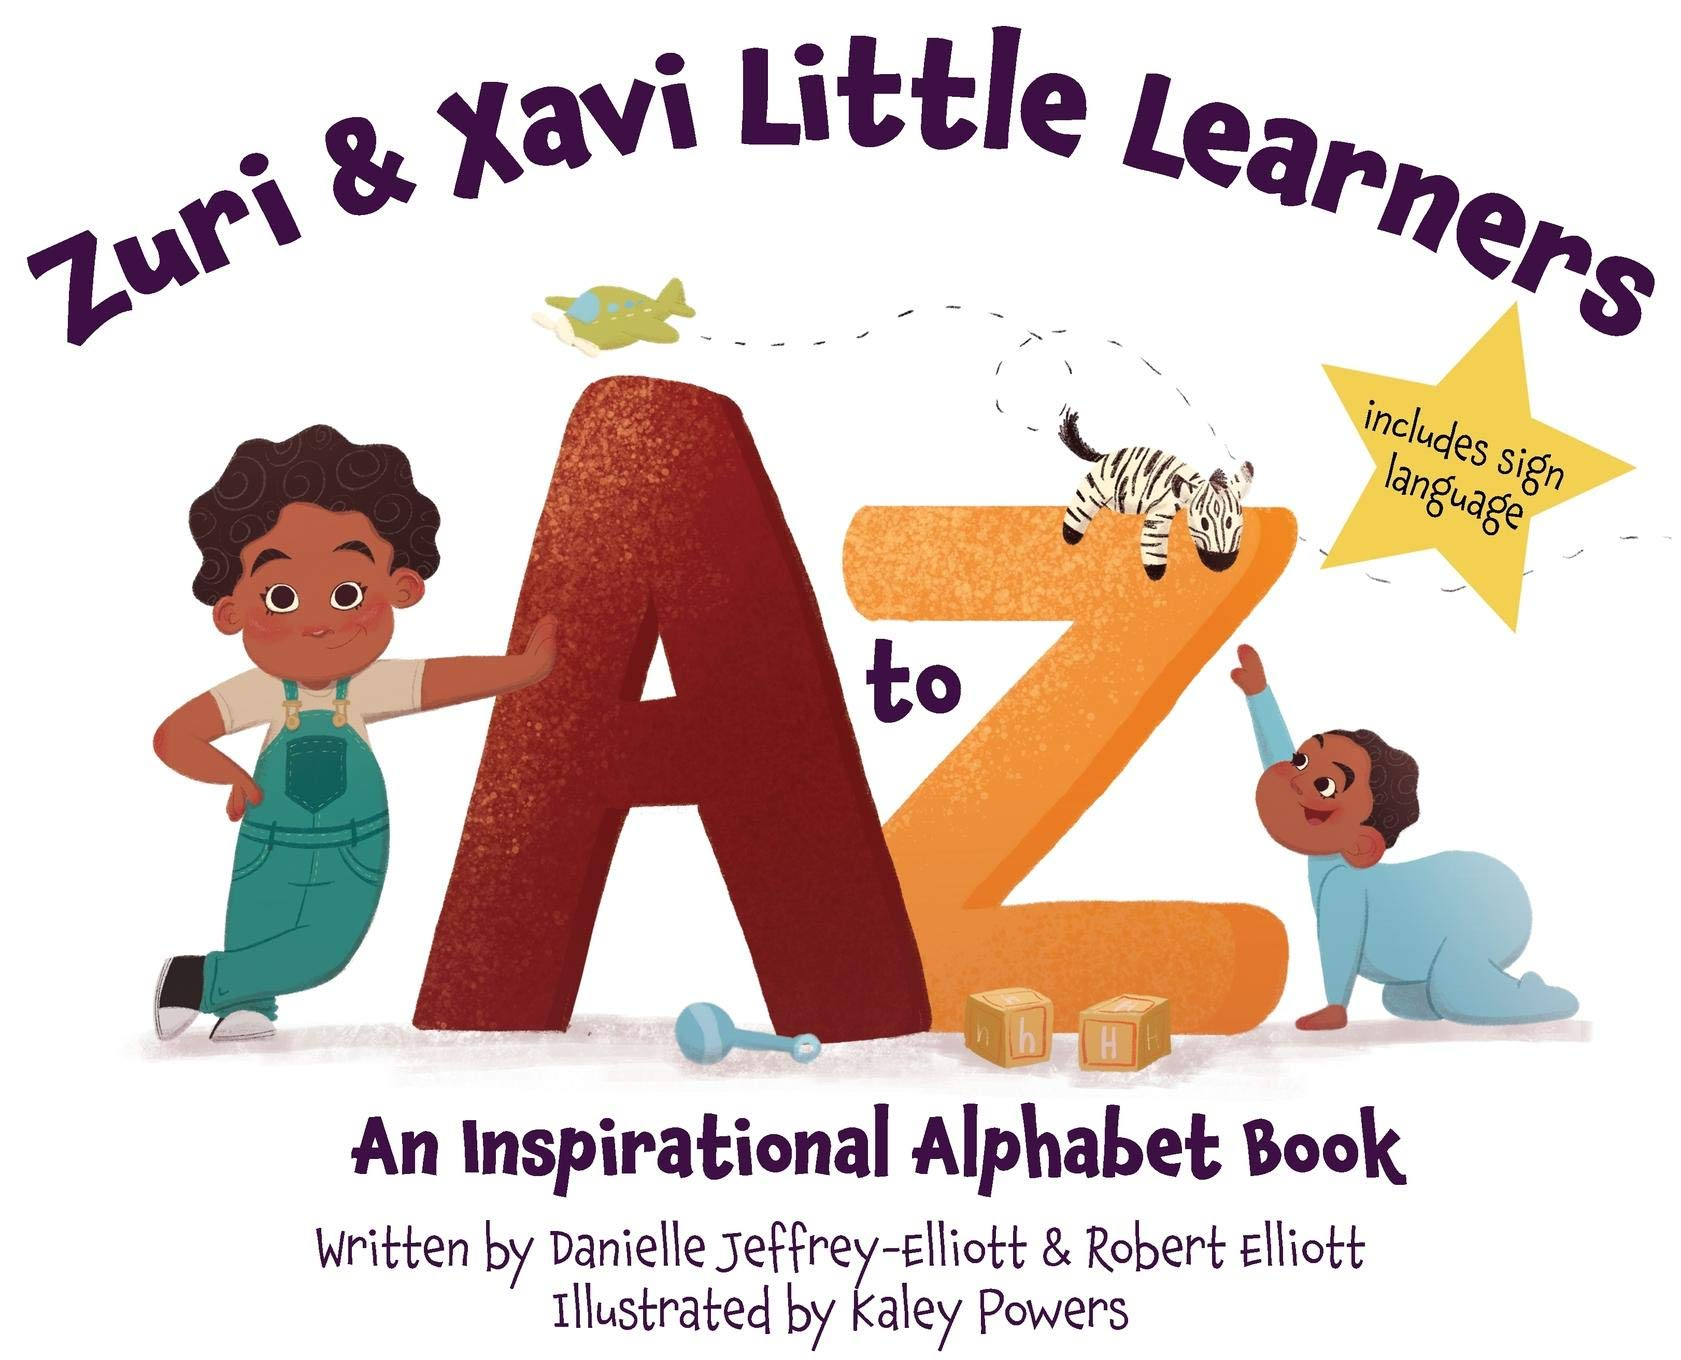 Zuri & Xavi Little Learners: A to Z An Inspirational Alphabet Book